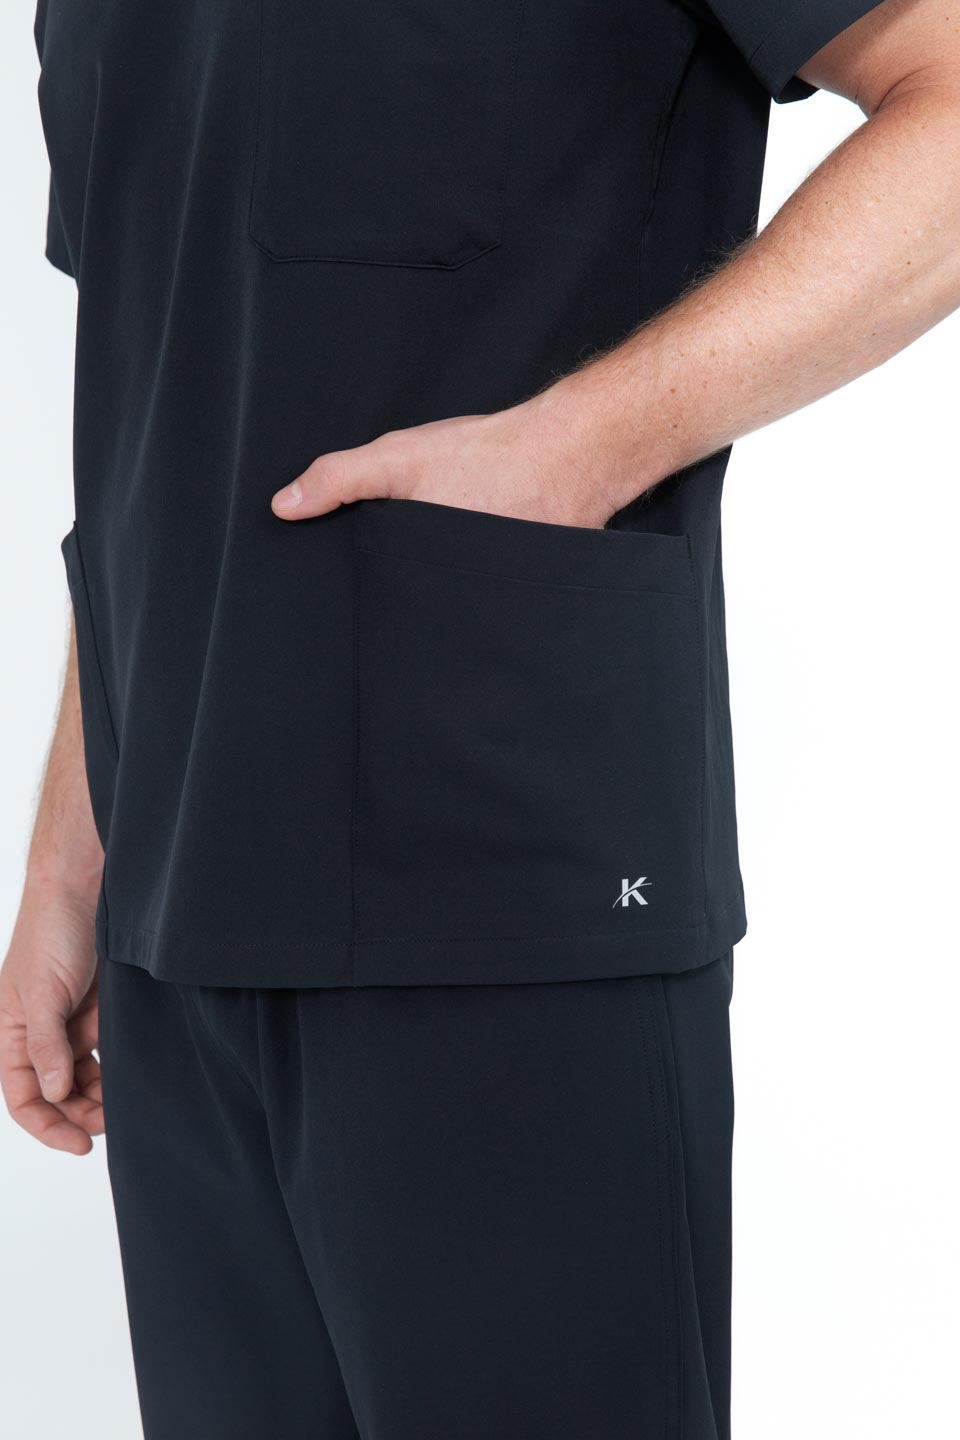 Kalea - Mens Utopia Scrub Top - Black